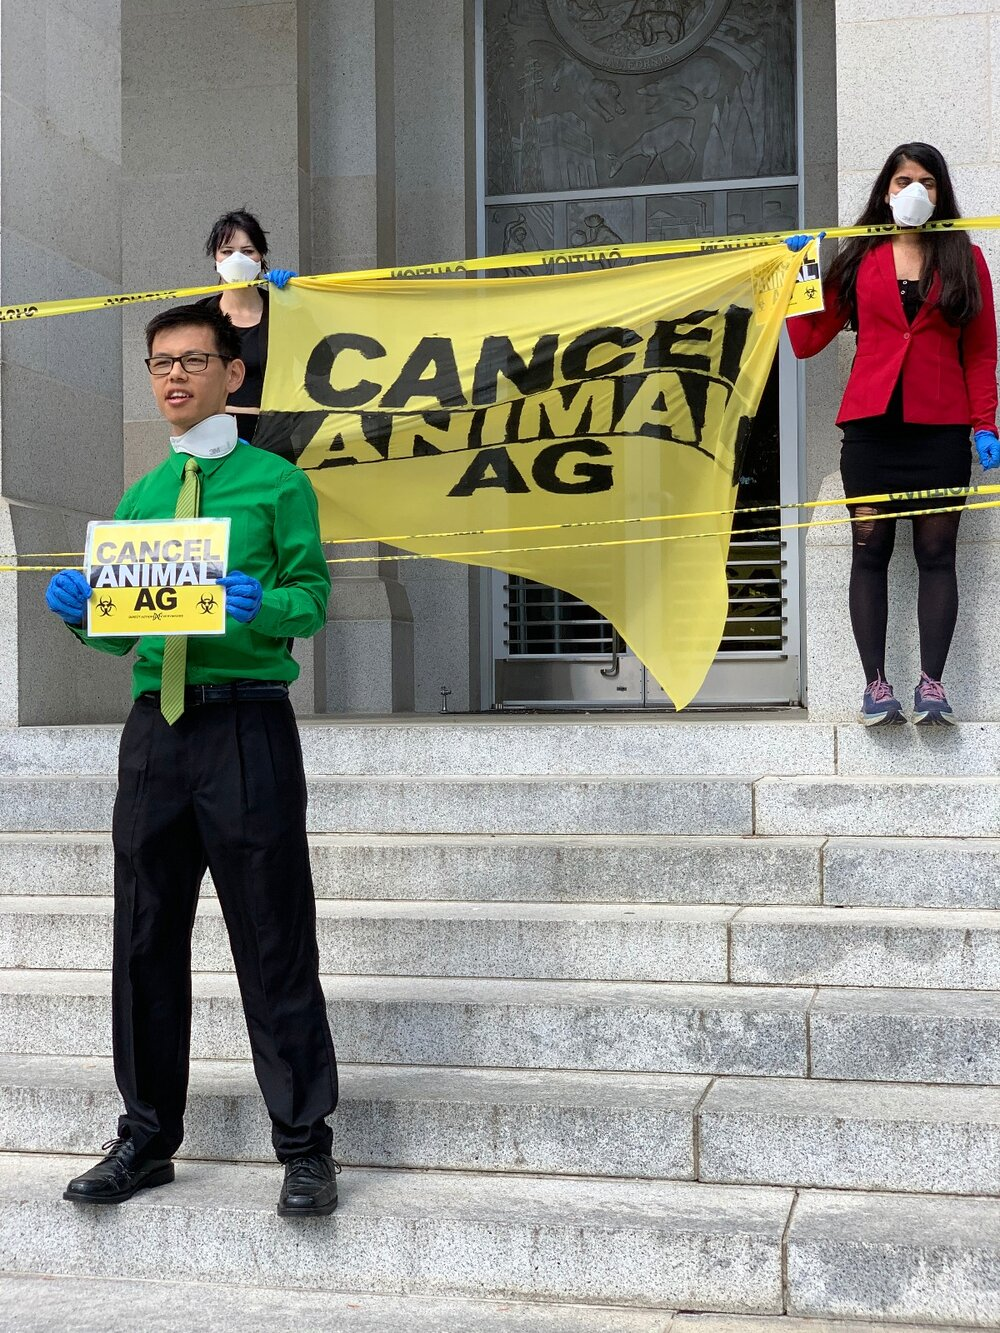 Chinese American activist Rocky Chau speaks at Tuesday's protest